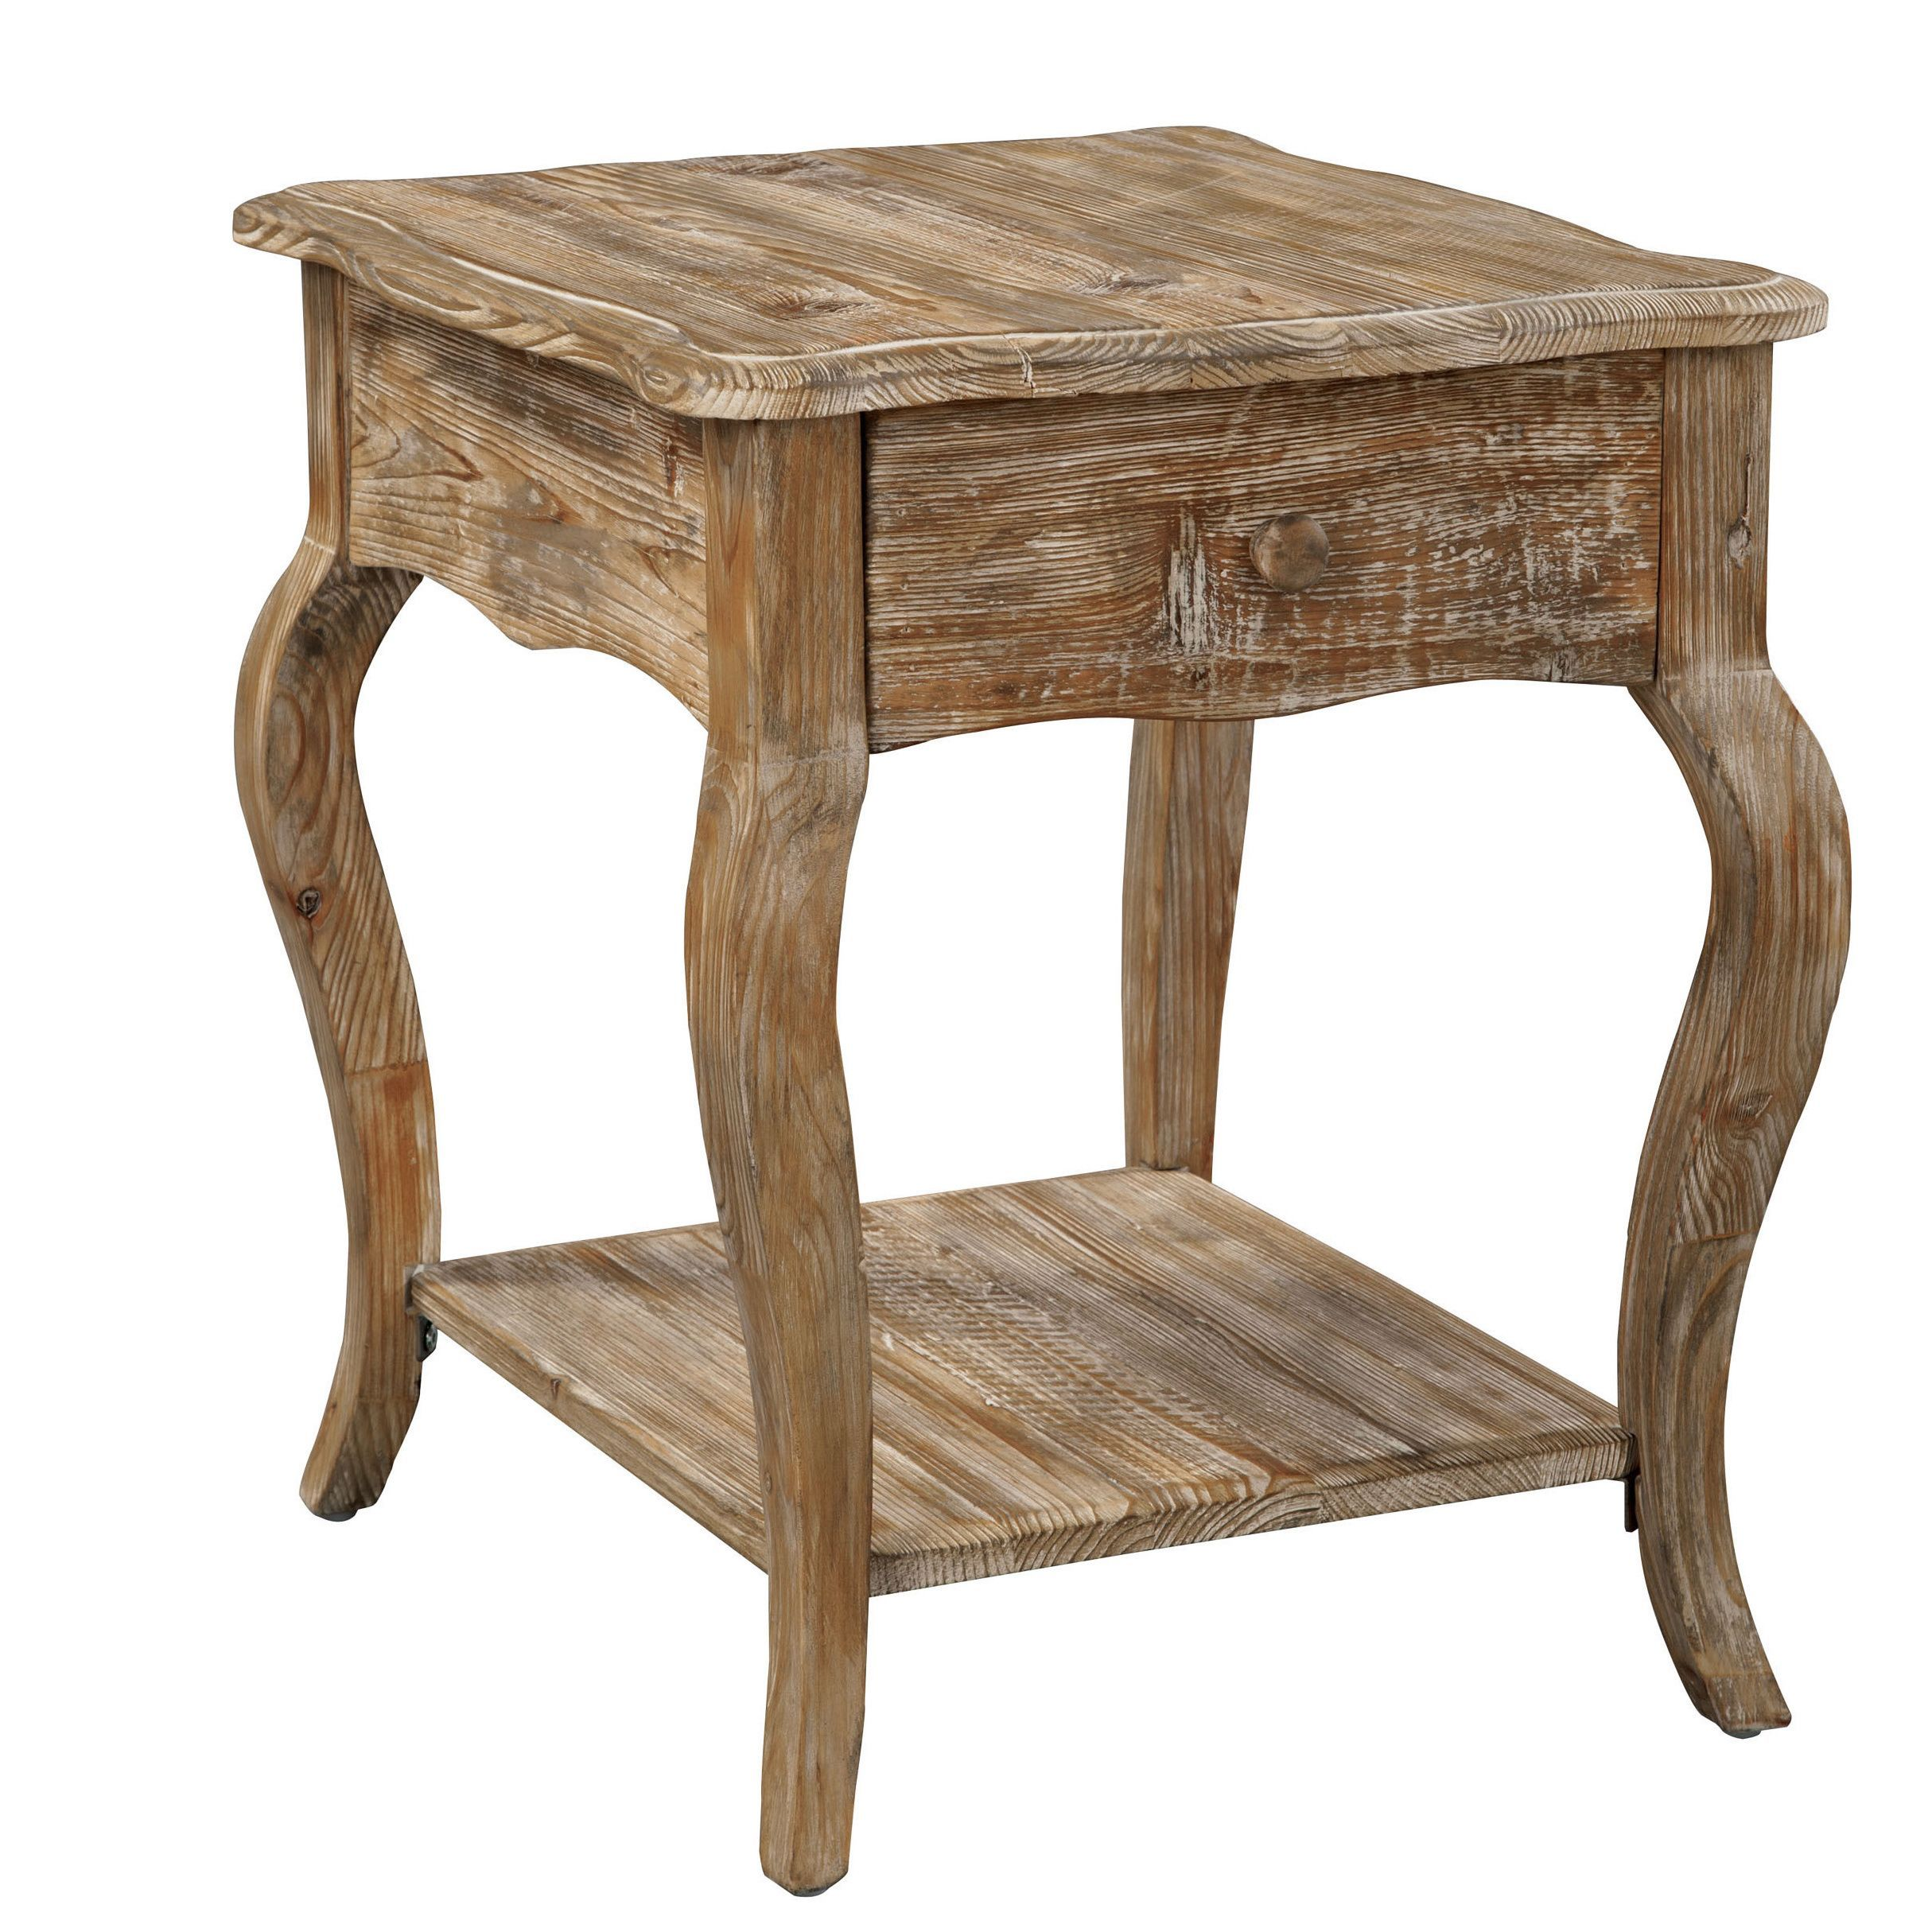 Alaterre Rustic Reclaimed Wood End Table Rustic End Tables Wood